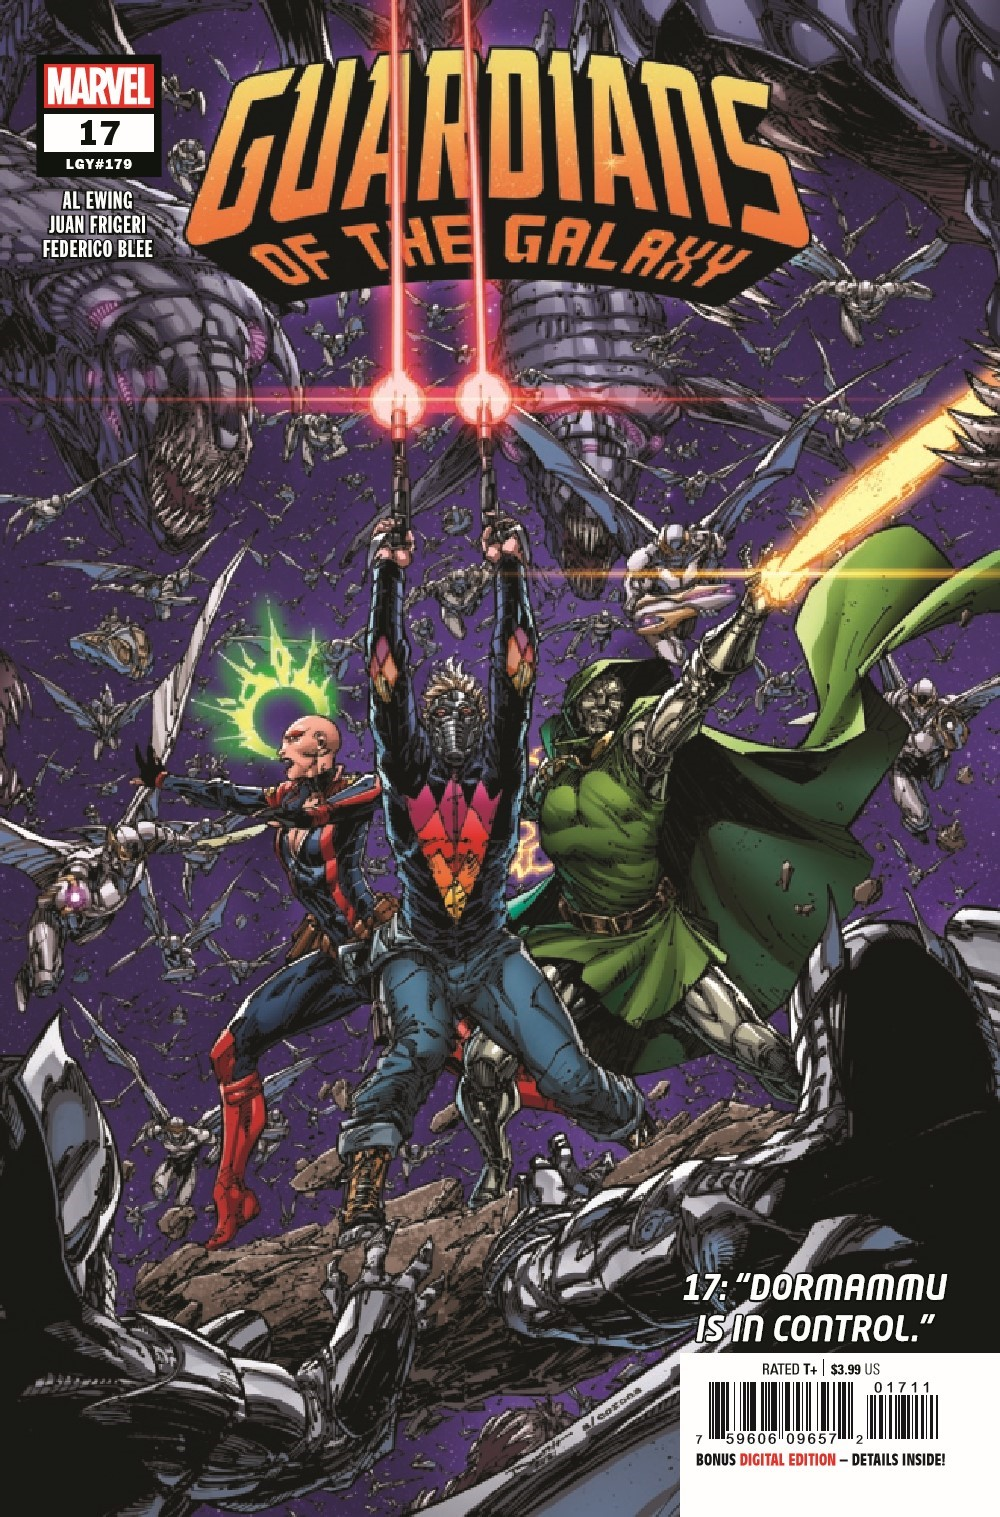 GARGAL2020017_Preview-1 ComicList Previews: GUARDIANS OF THE GALAXY #17